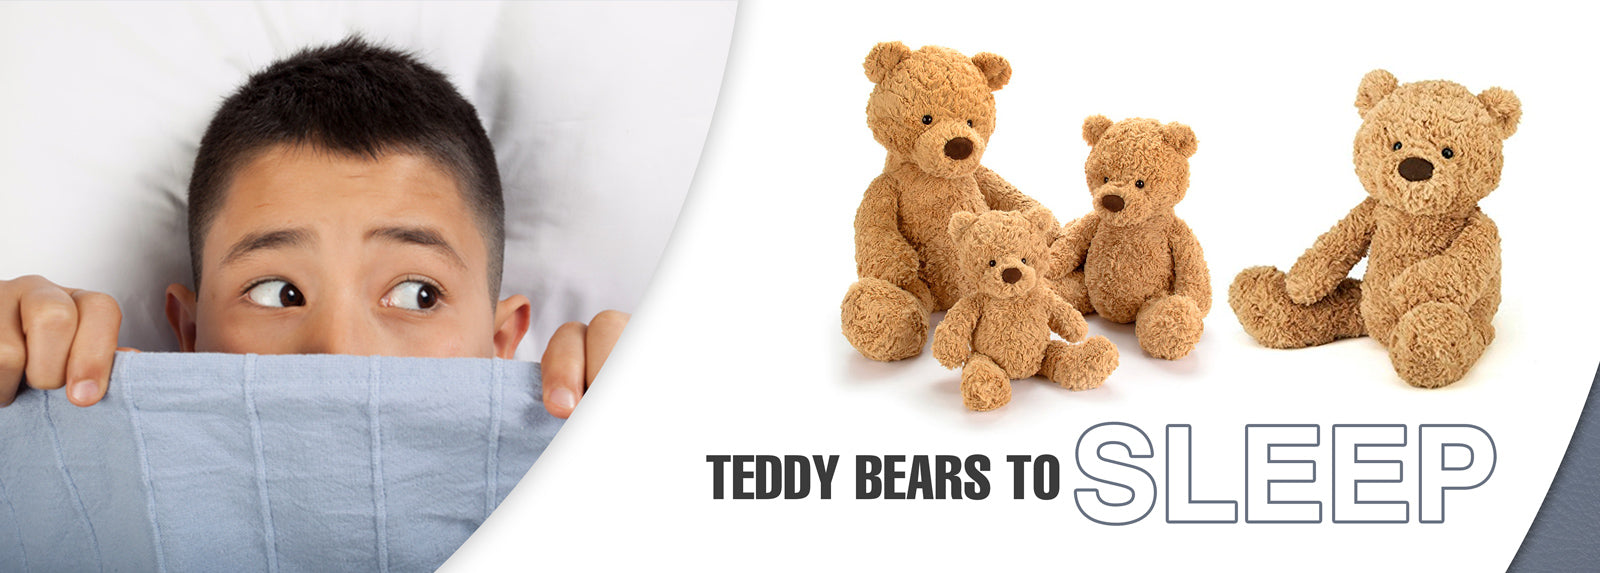 Teddy Bears to Help Baby Sleep